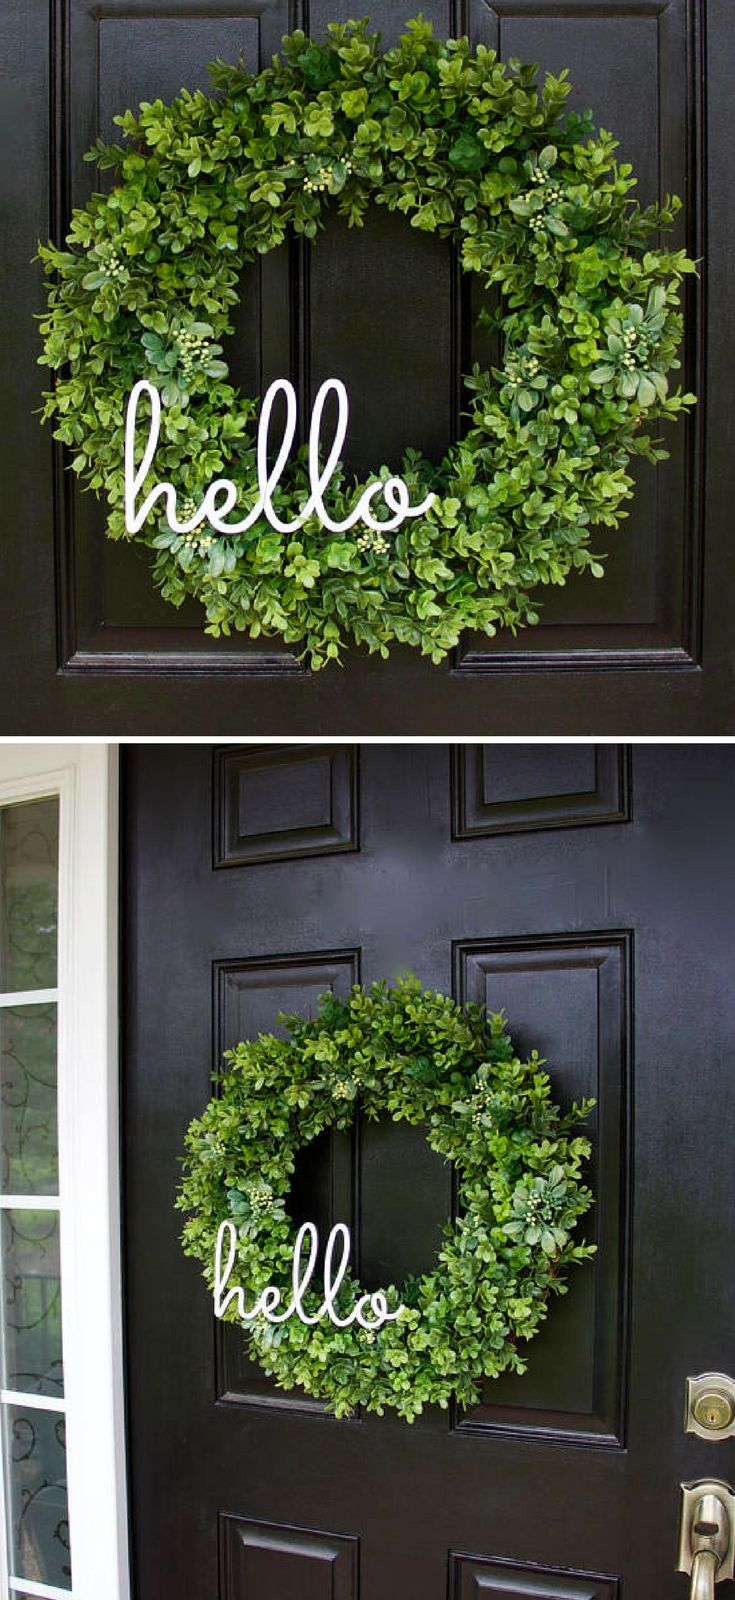 Boxwood Wreath, Greenery Wreath, Hello Wreath, Everyday Wreath, Year Round Wreath, Farmhouse Decor, Boxwood Door Wreath, Farmhouse wreath, Gift idea, Home Decor, Farmhouse Porch decor #ad